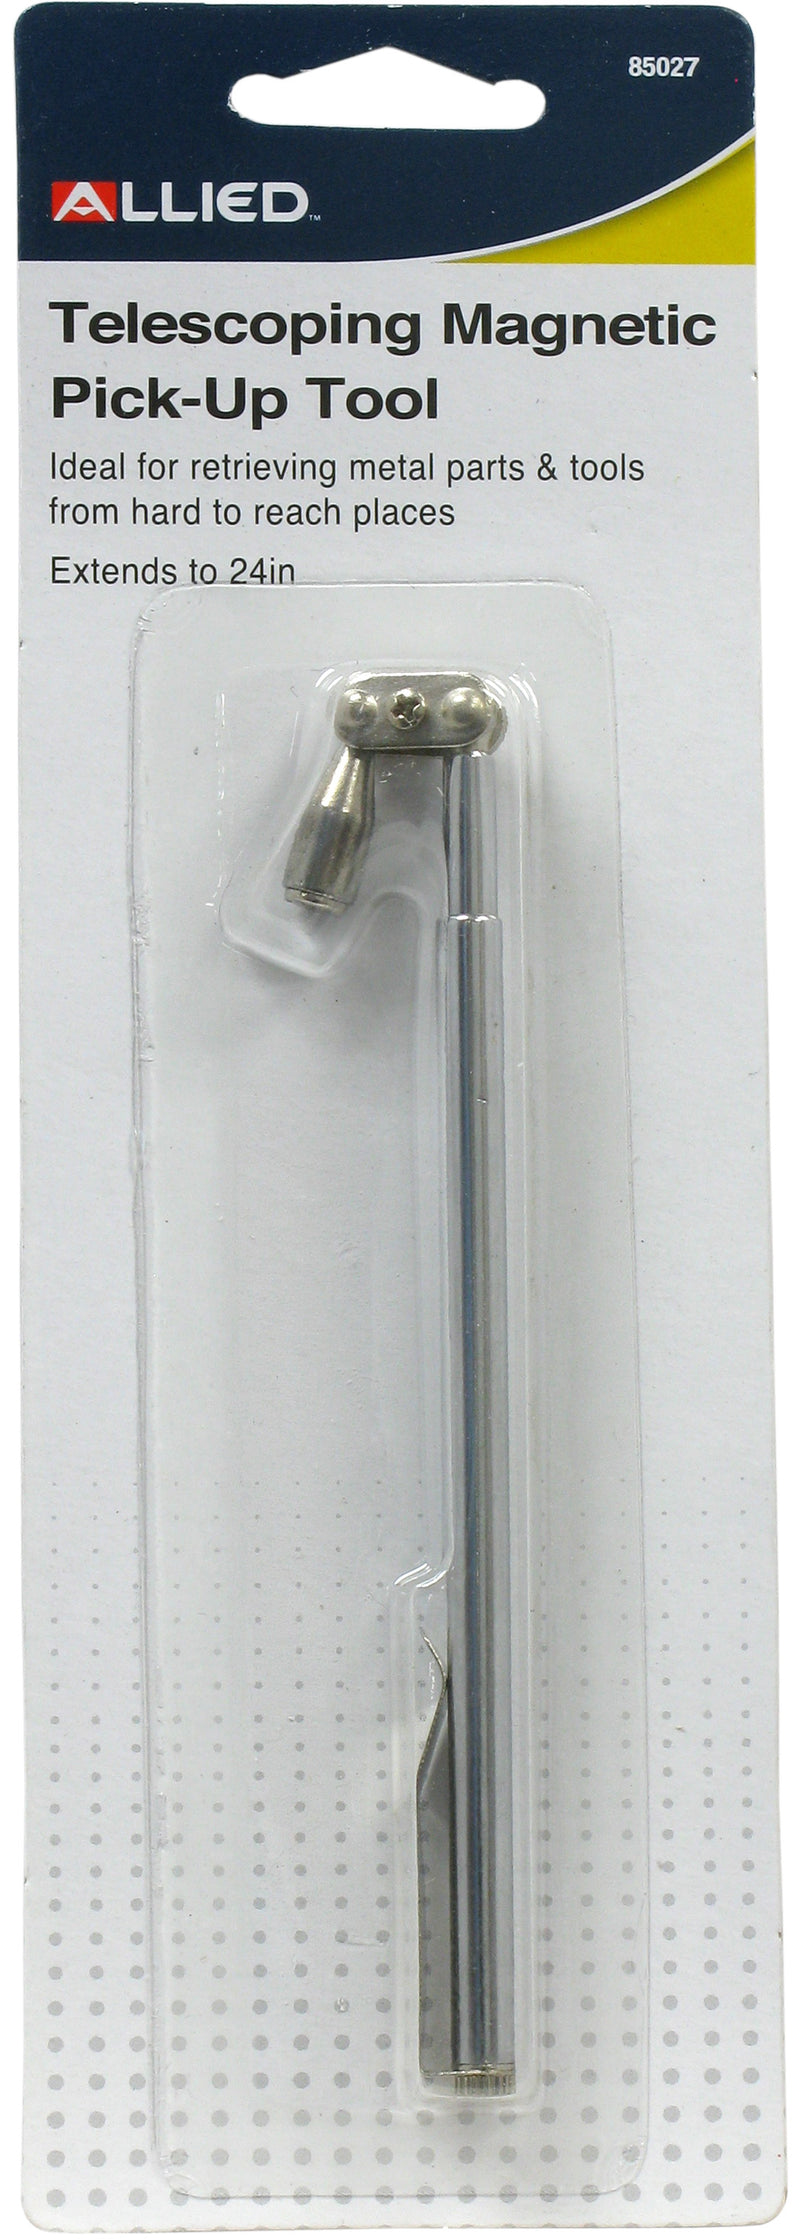 Tele Magnetic Pick Up Tool